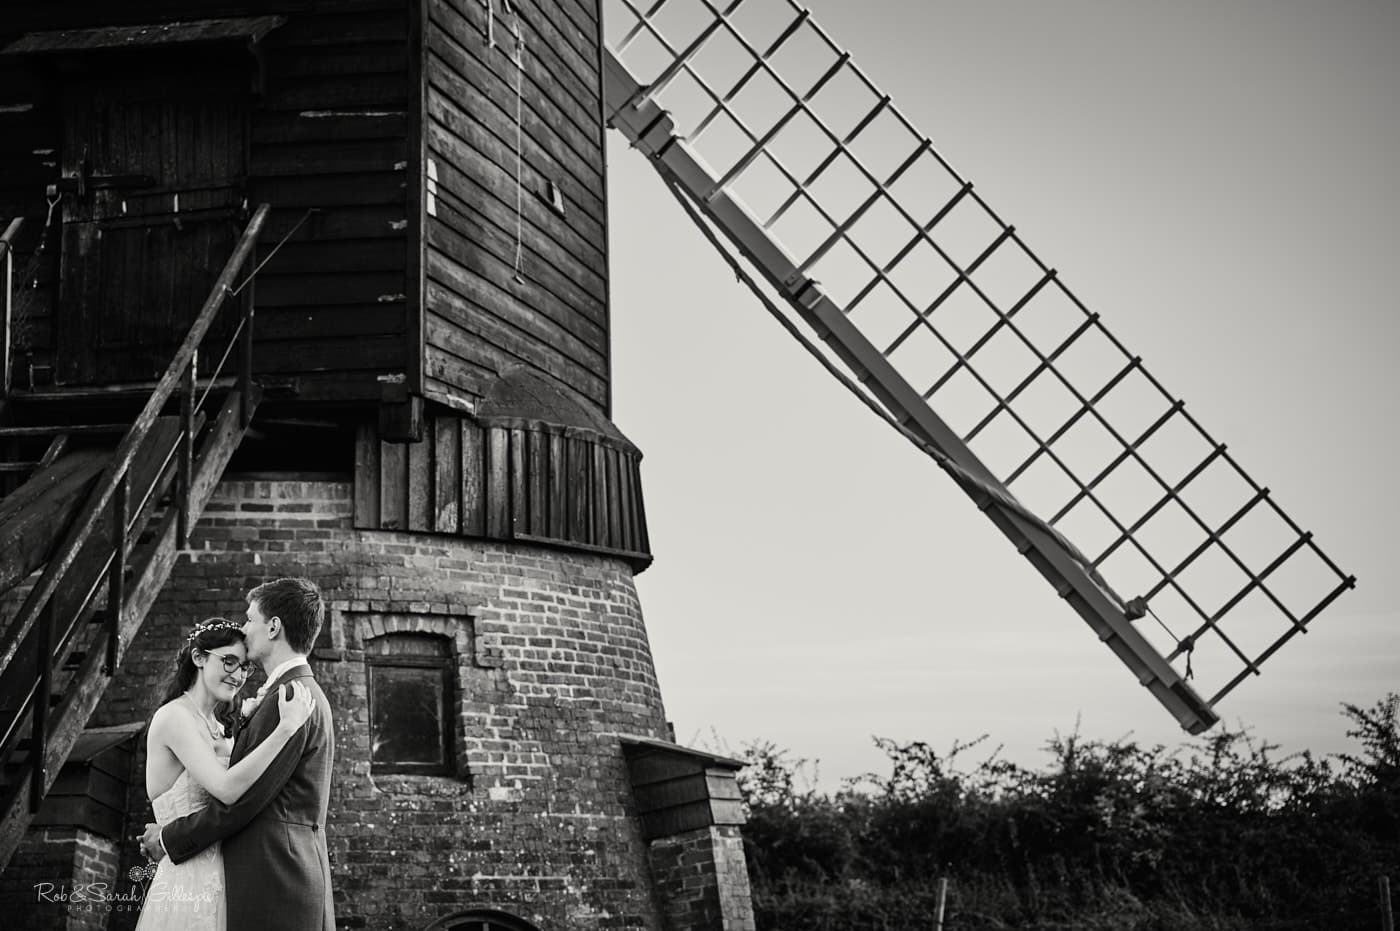 Newly married couple standing next to old windmill at Avoncroft Museum wedding